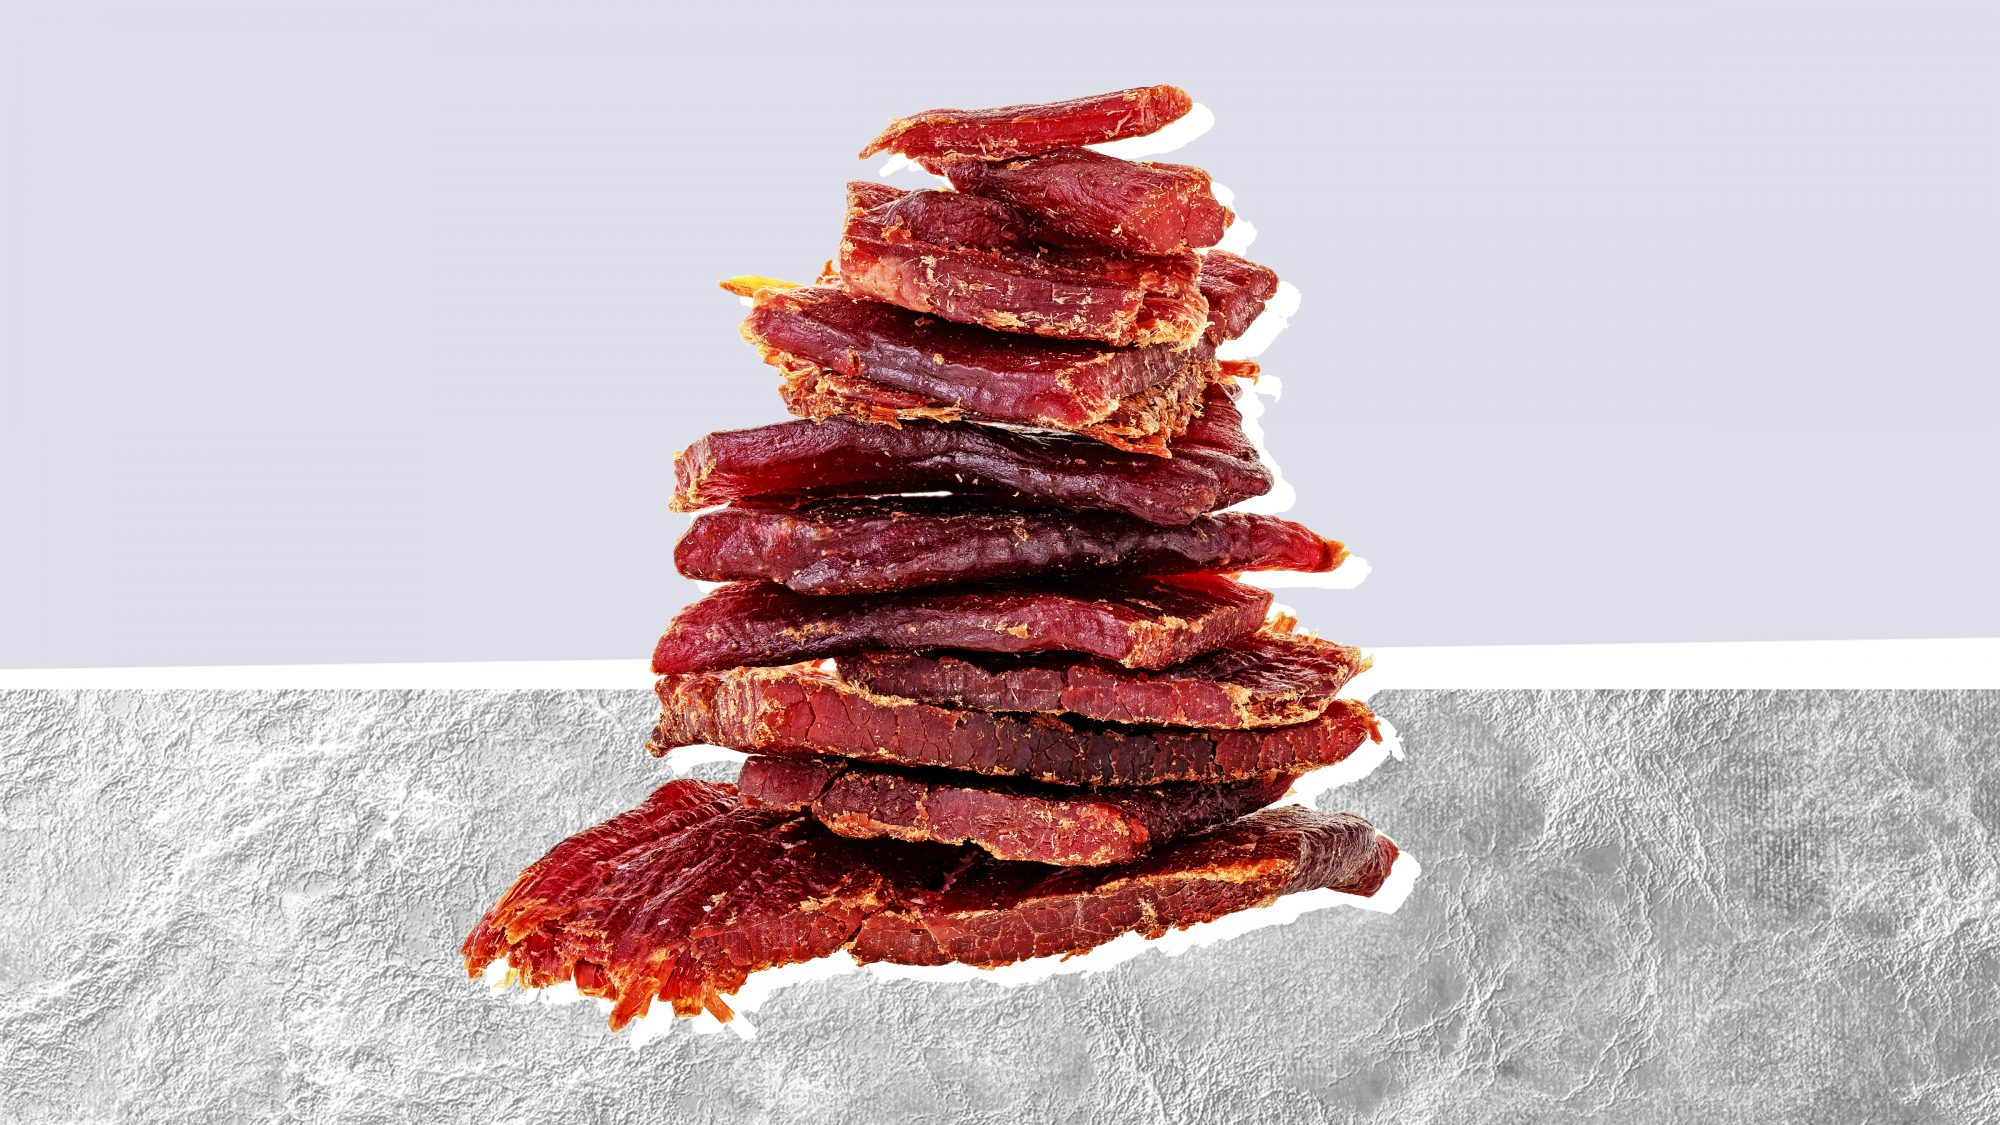 Is Beef Jerky Healthy? Here's What A Nutritionist Wants You To Know About The Popular Snack